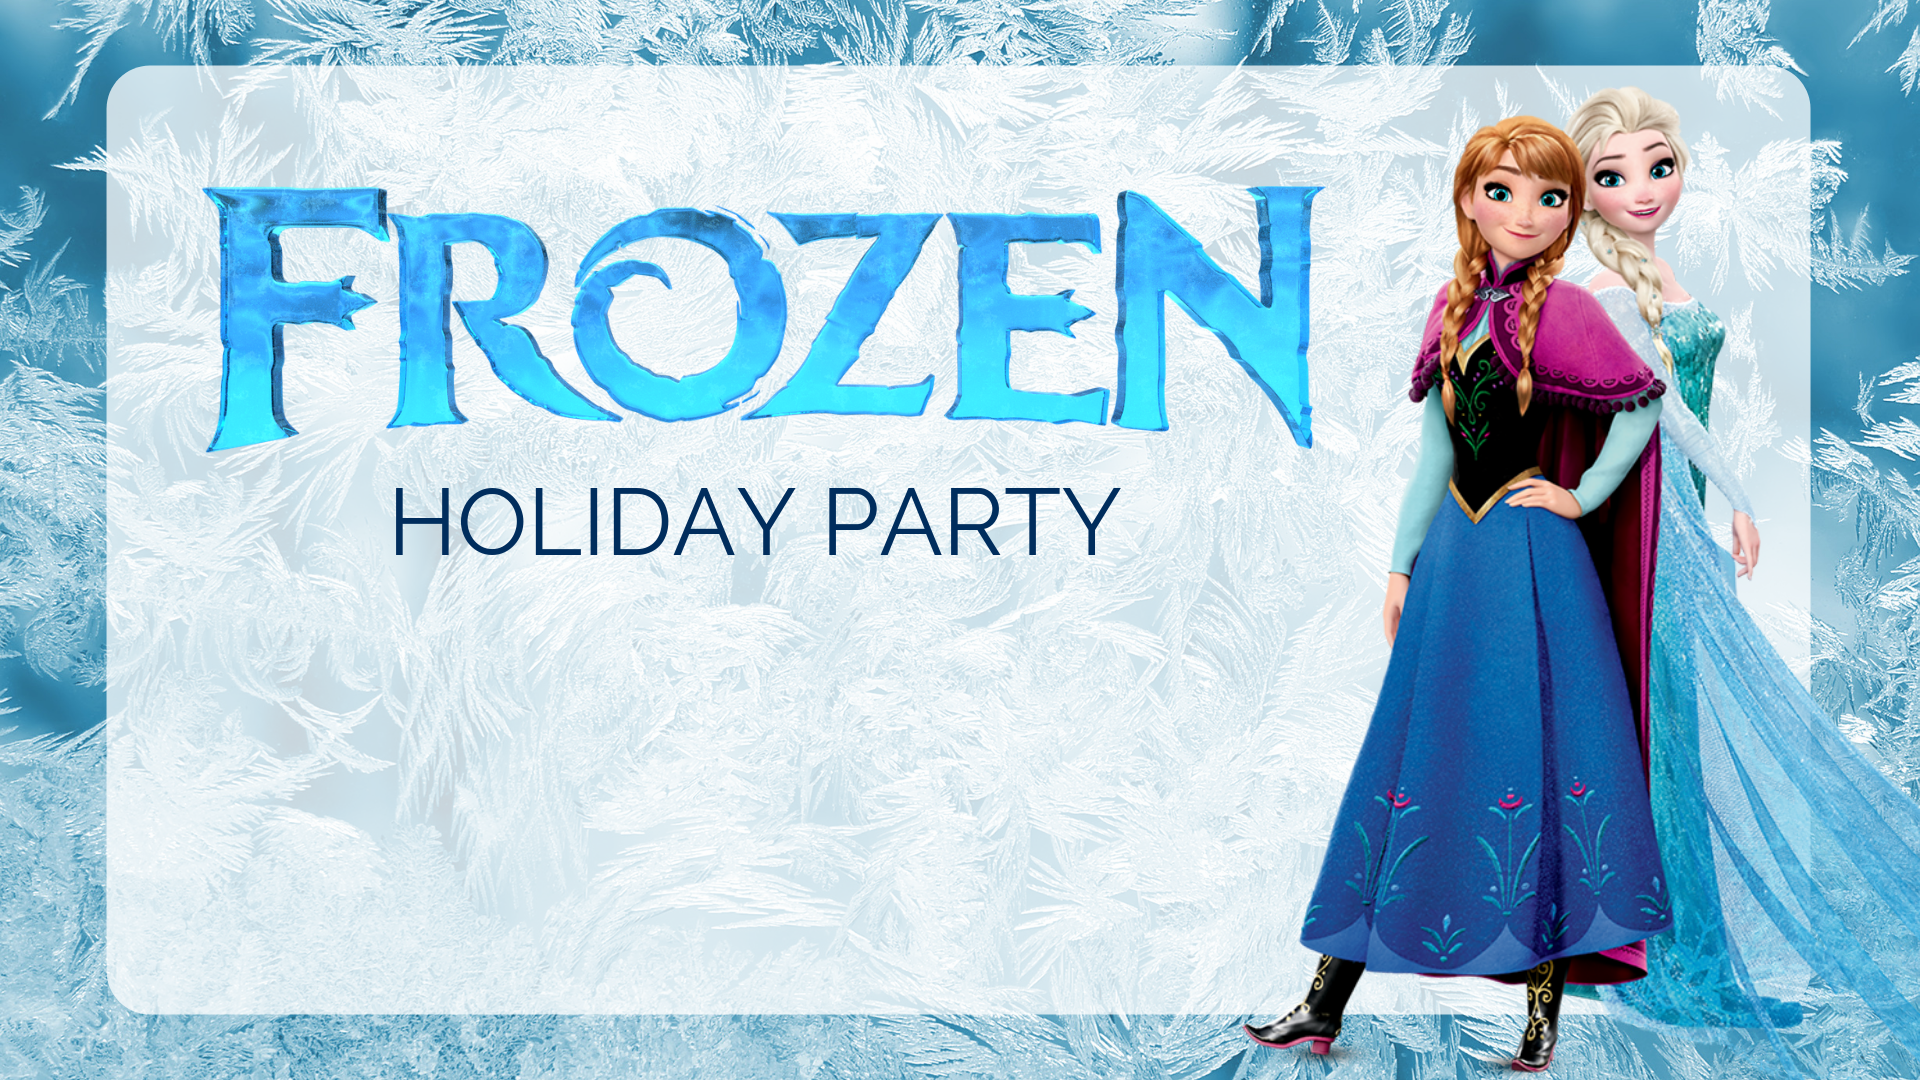 Frozen Holiday Party